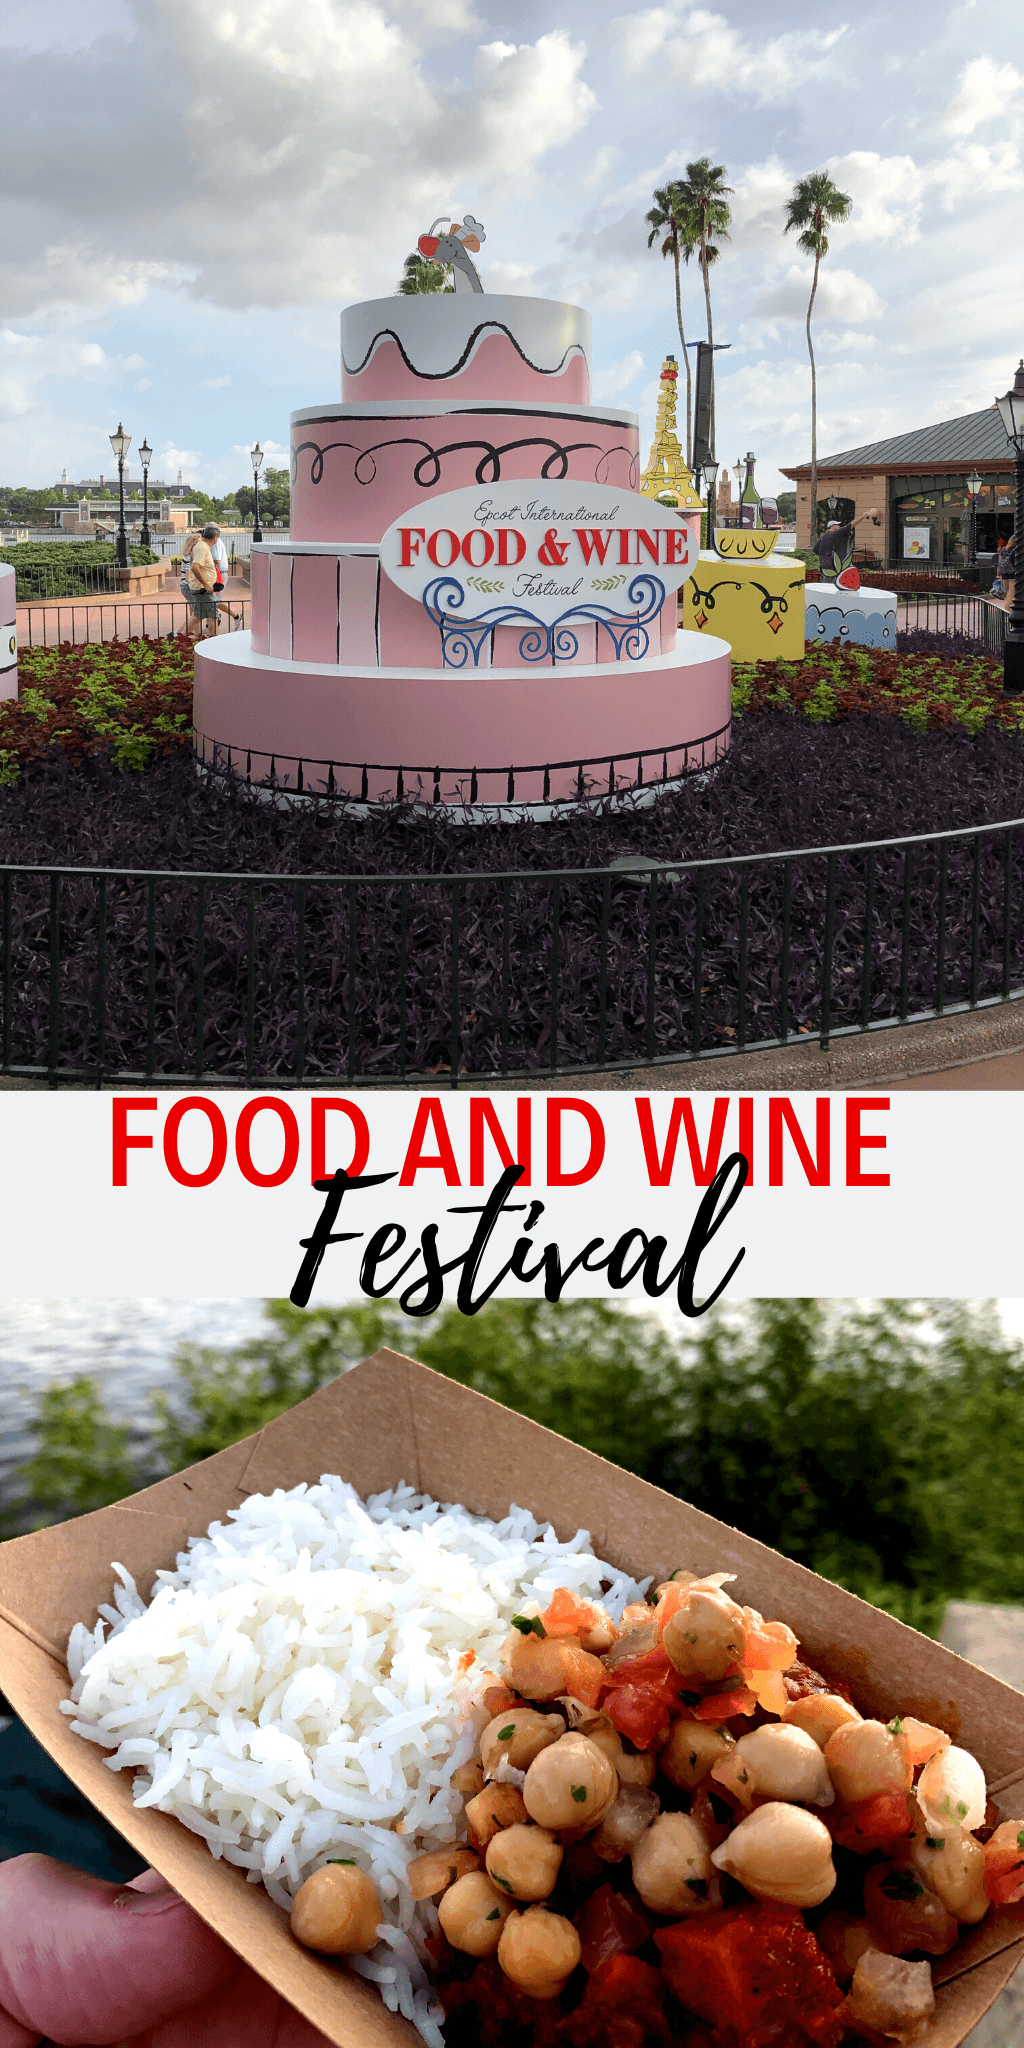 If you are planning a Walt Disney World vacation, that means Food and Wine Festival. Here's an overview of festival events you can look forward to.